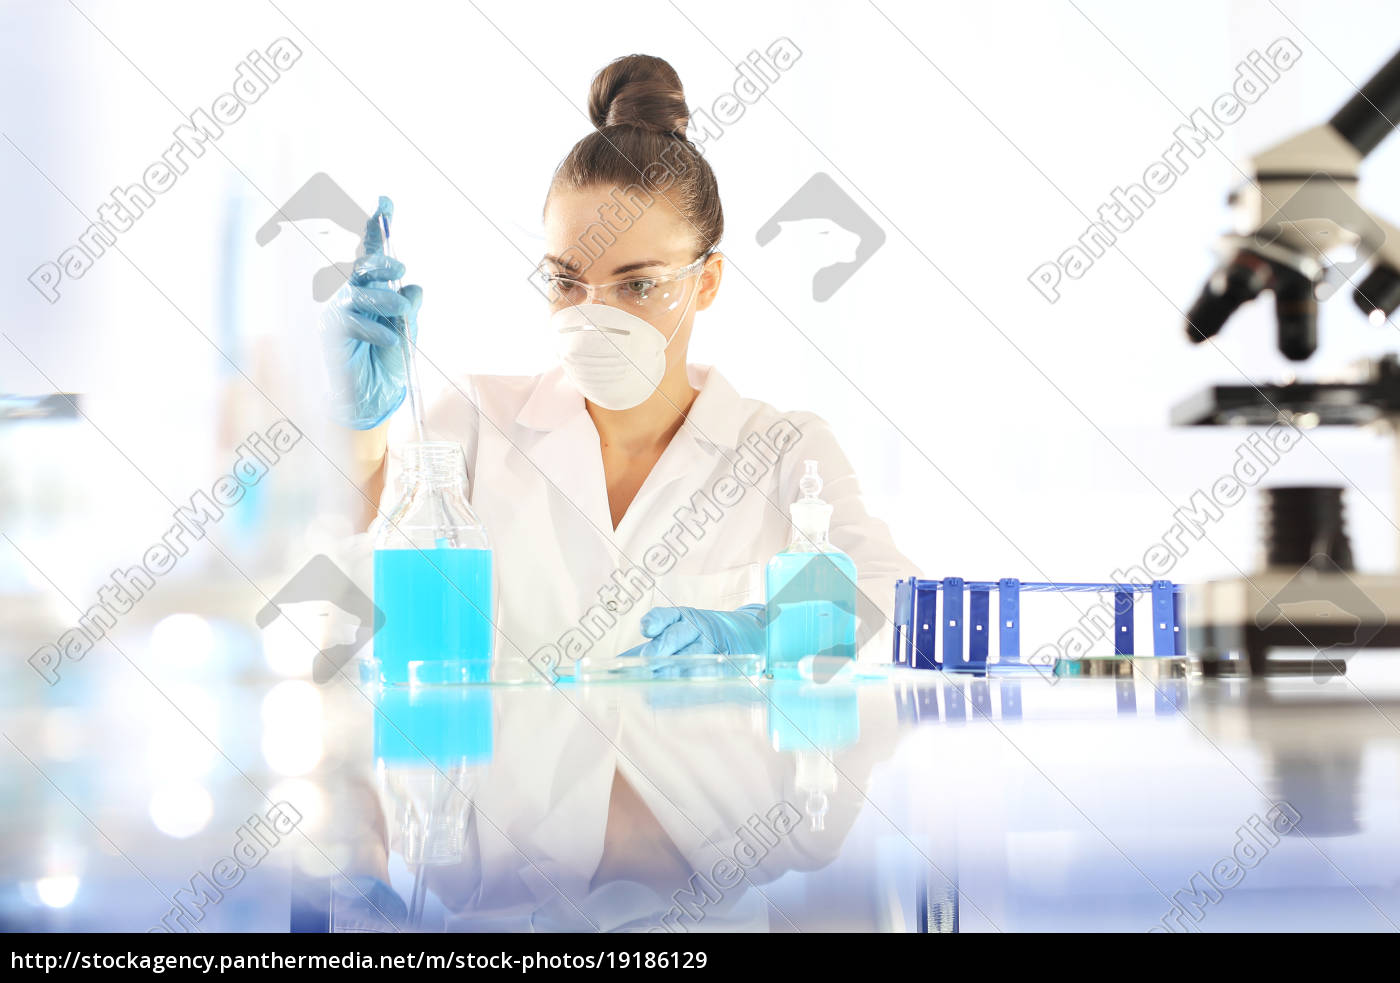 the, chemist, examines, the, sample, under - 19186129